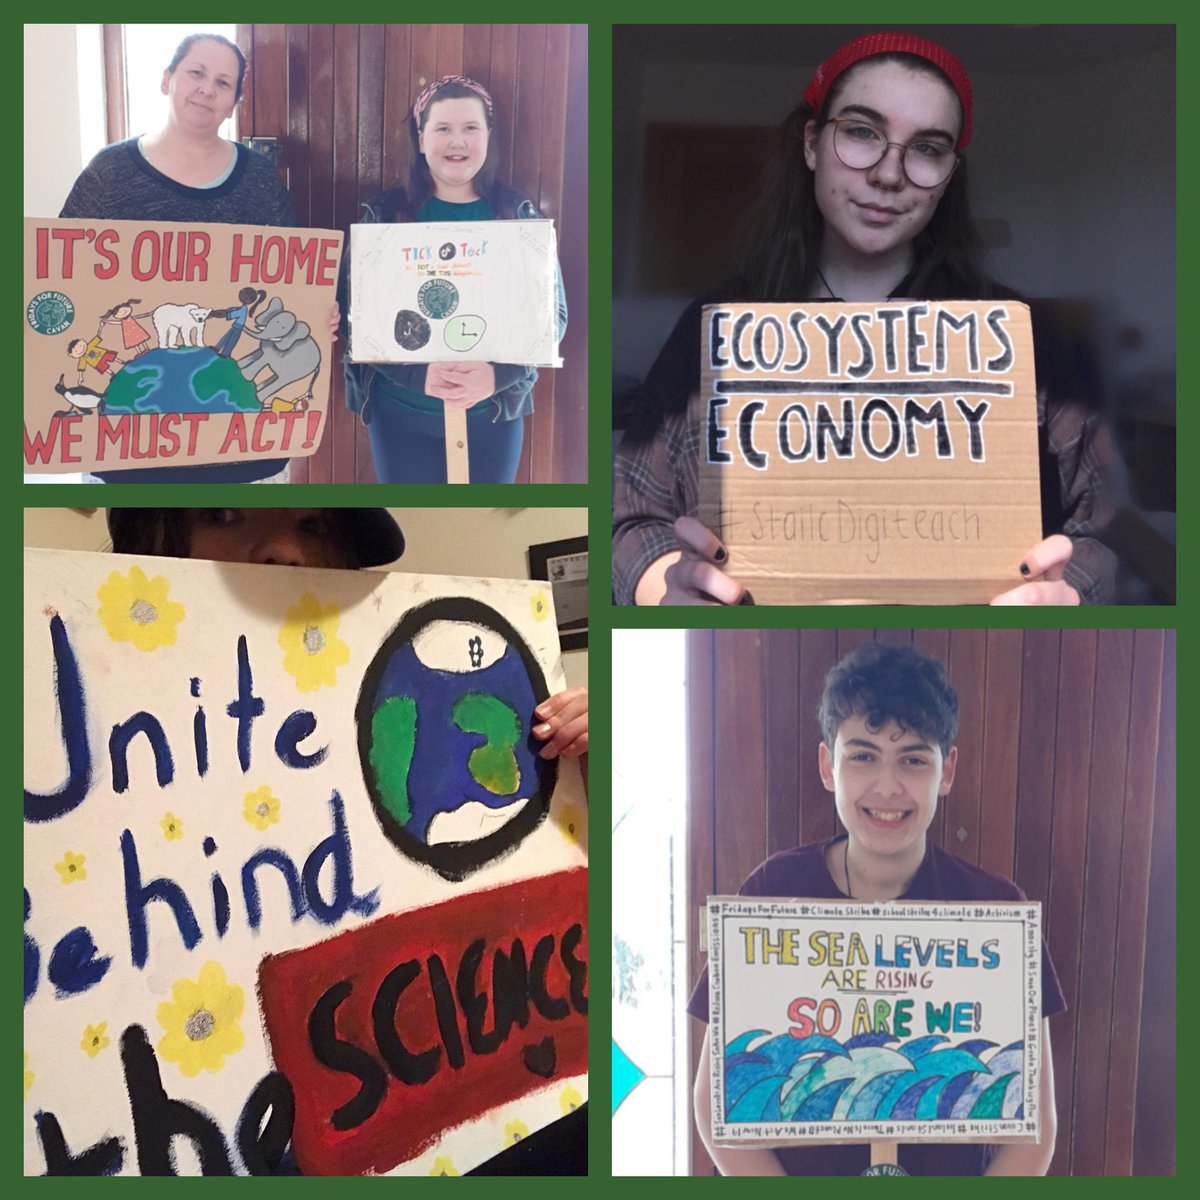 We can not go out and strike because of COVID-19 - so we joined the #climatestrikeonline. You can join by using that hashtags #digitalstrike #stailcdigiteach #stailcaeráide. 🌏🤗 #fridaysforfuture #climatestrike #coronavirus #ireland #teamtrees #climateaction #noplanetb